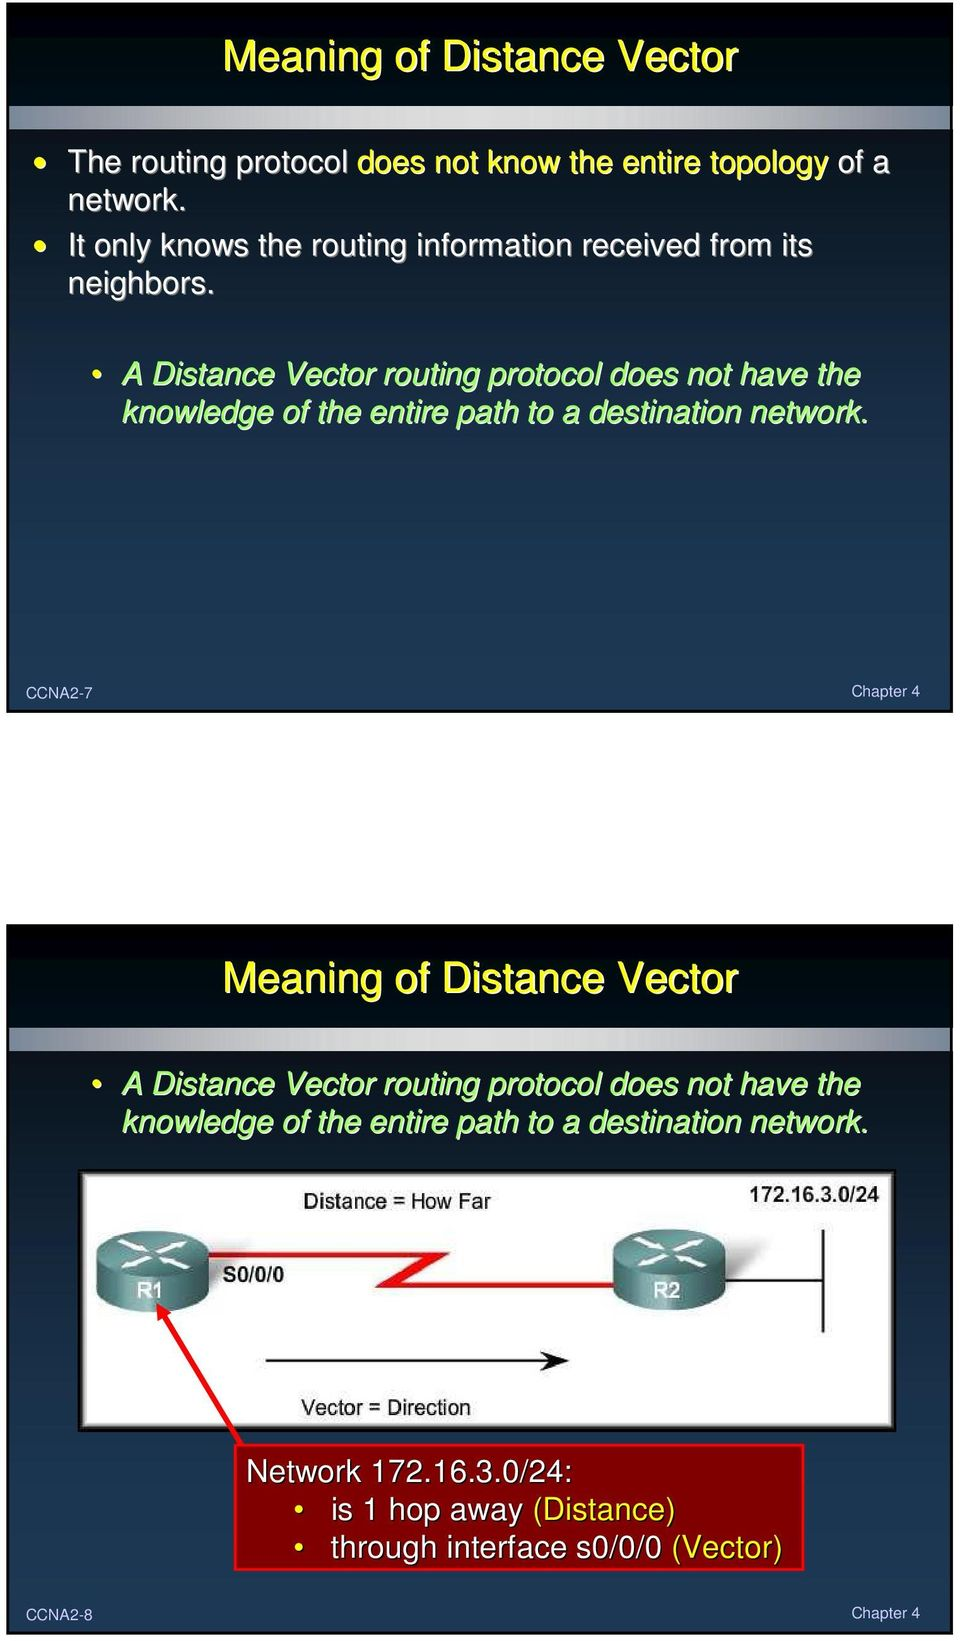 A Distance Vector routing protocol does not have the knowledge of the entire path to a destination network.